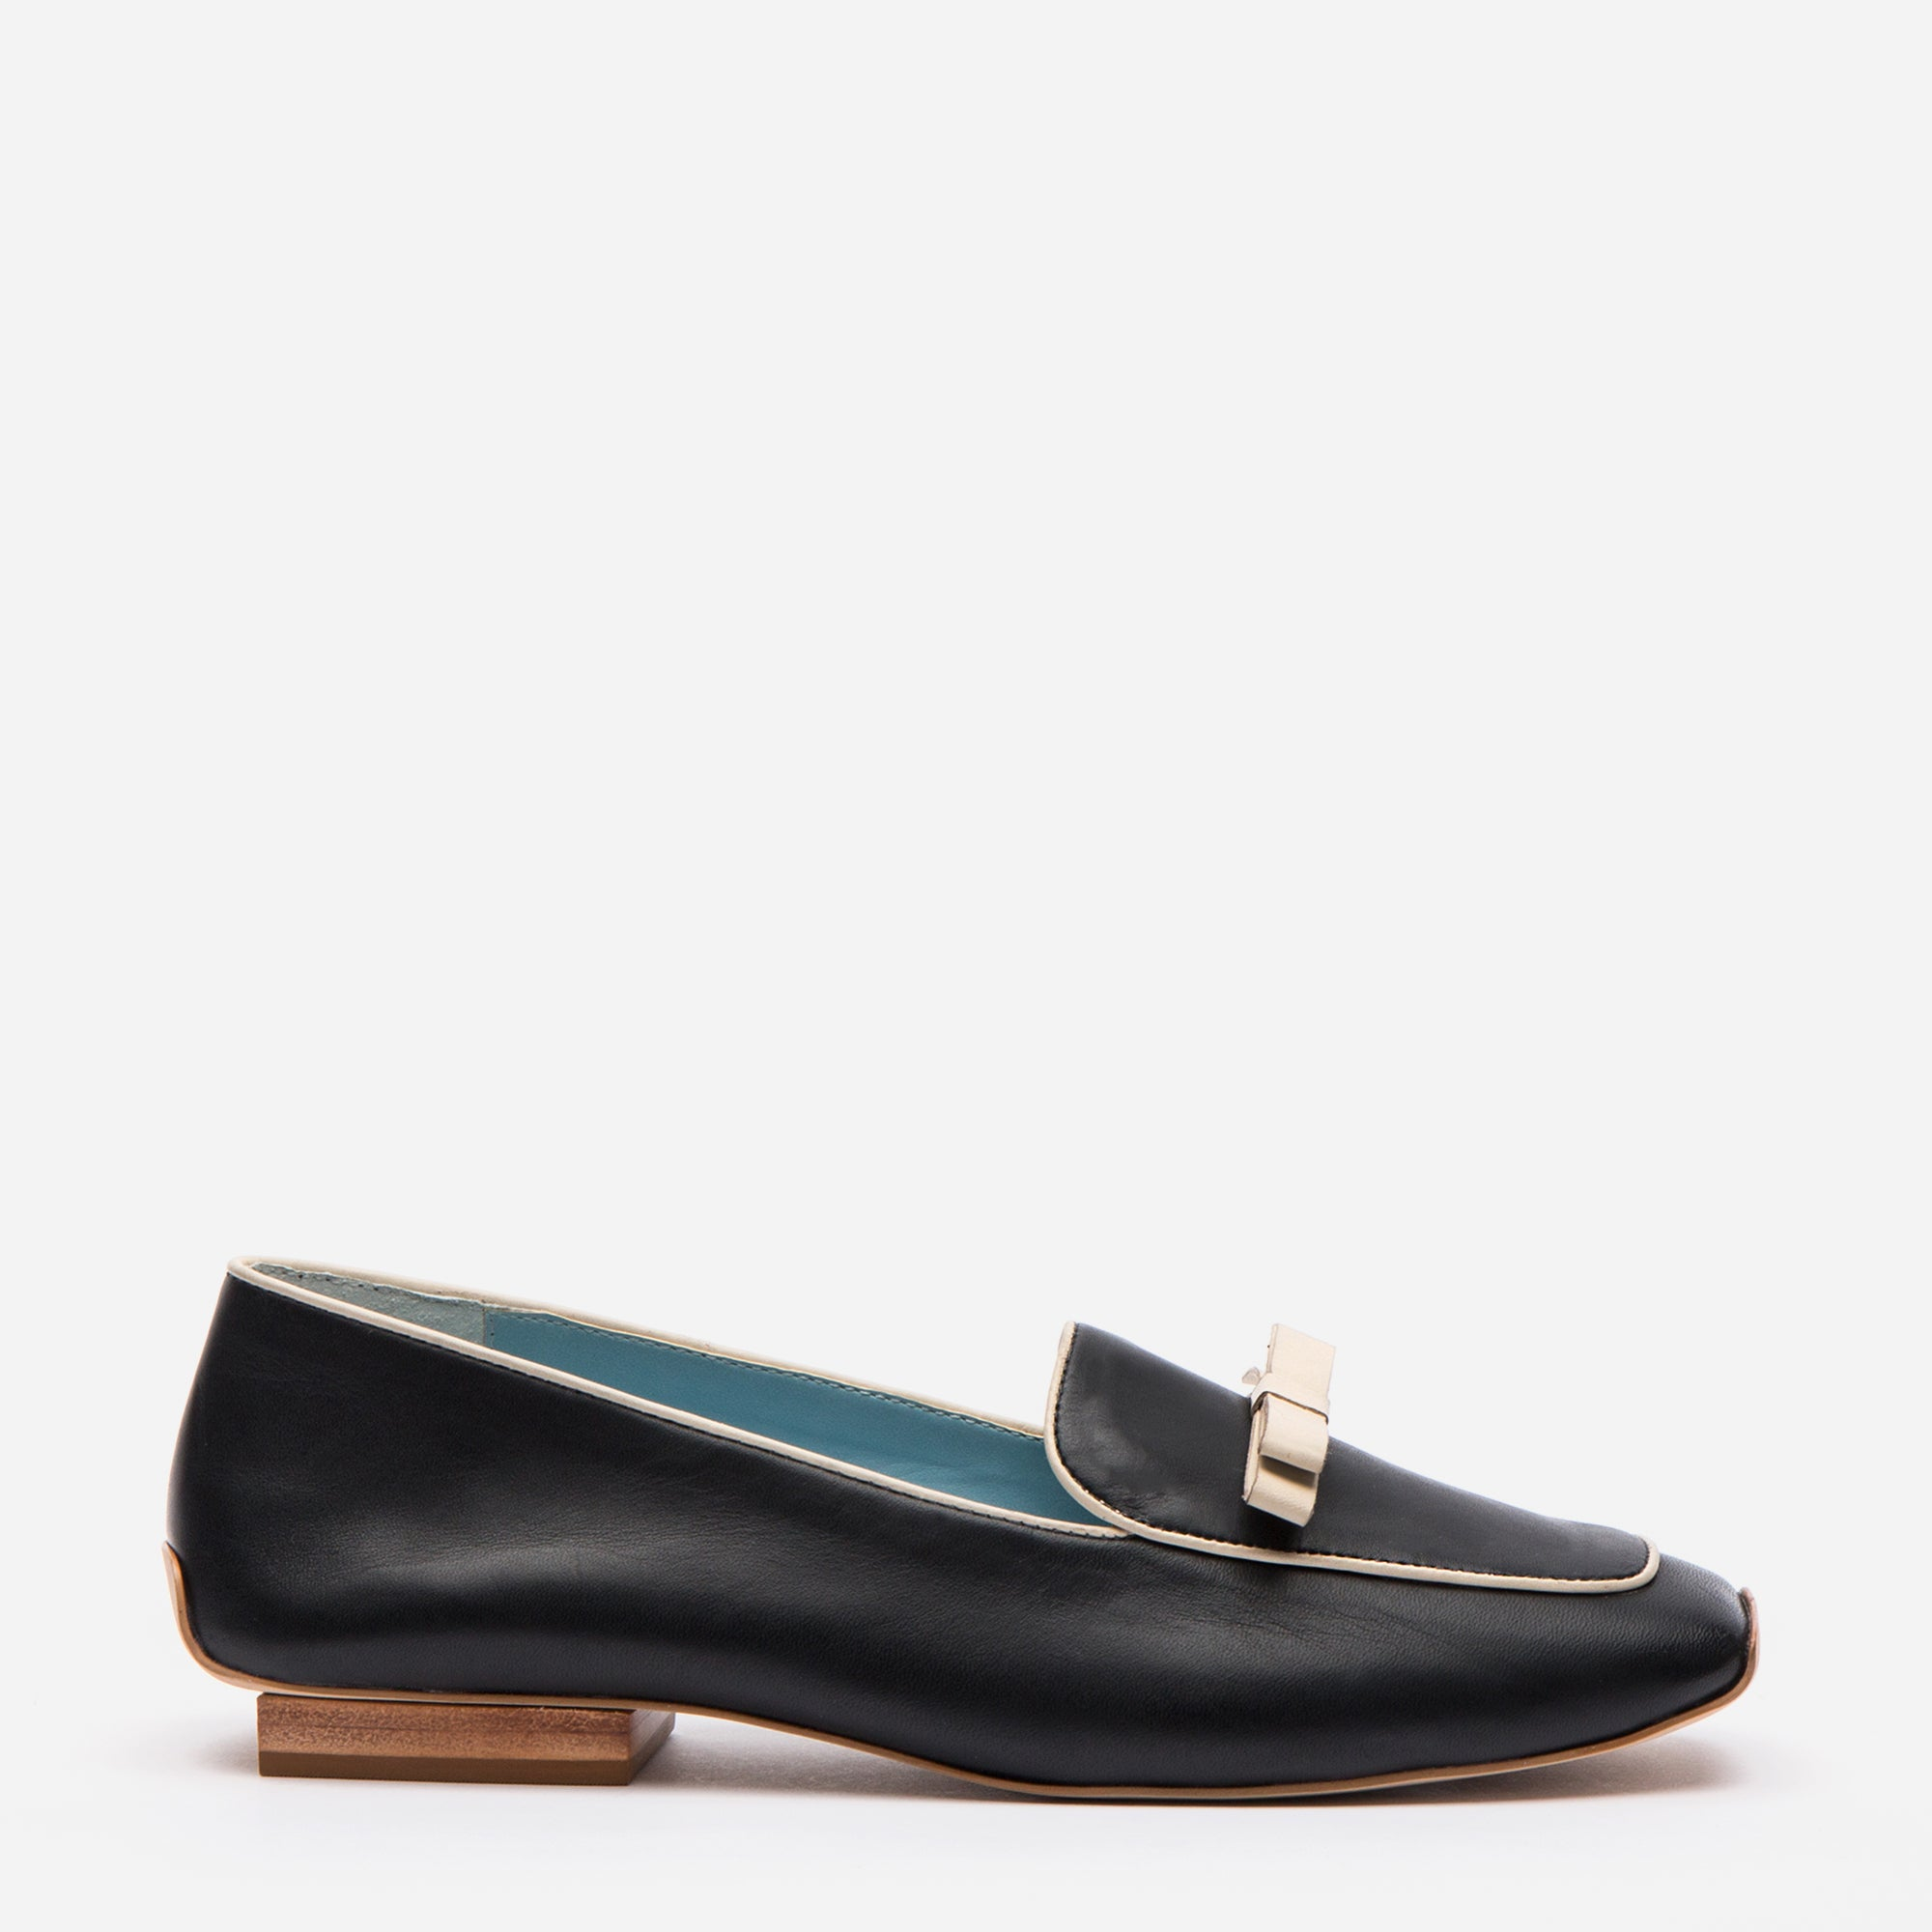 Suzanne Loafer Leather Black Oyster - Frances Valentine